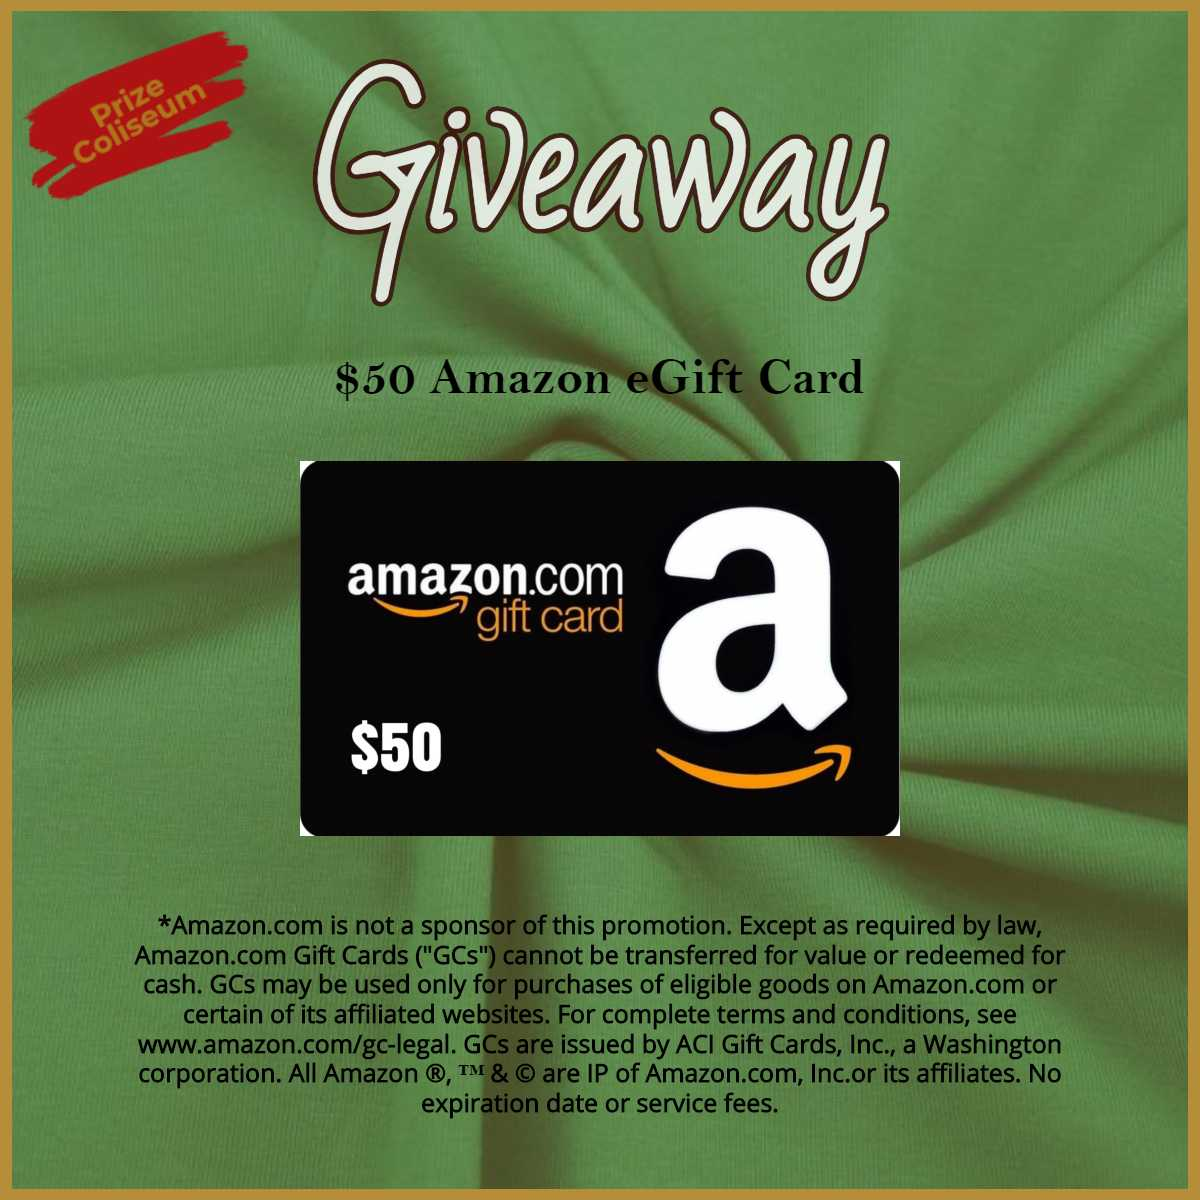 Enter for a chance to win a $50 Amazon eGift Card from PrizeColiseum Giveaway Image